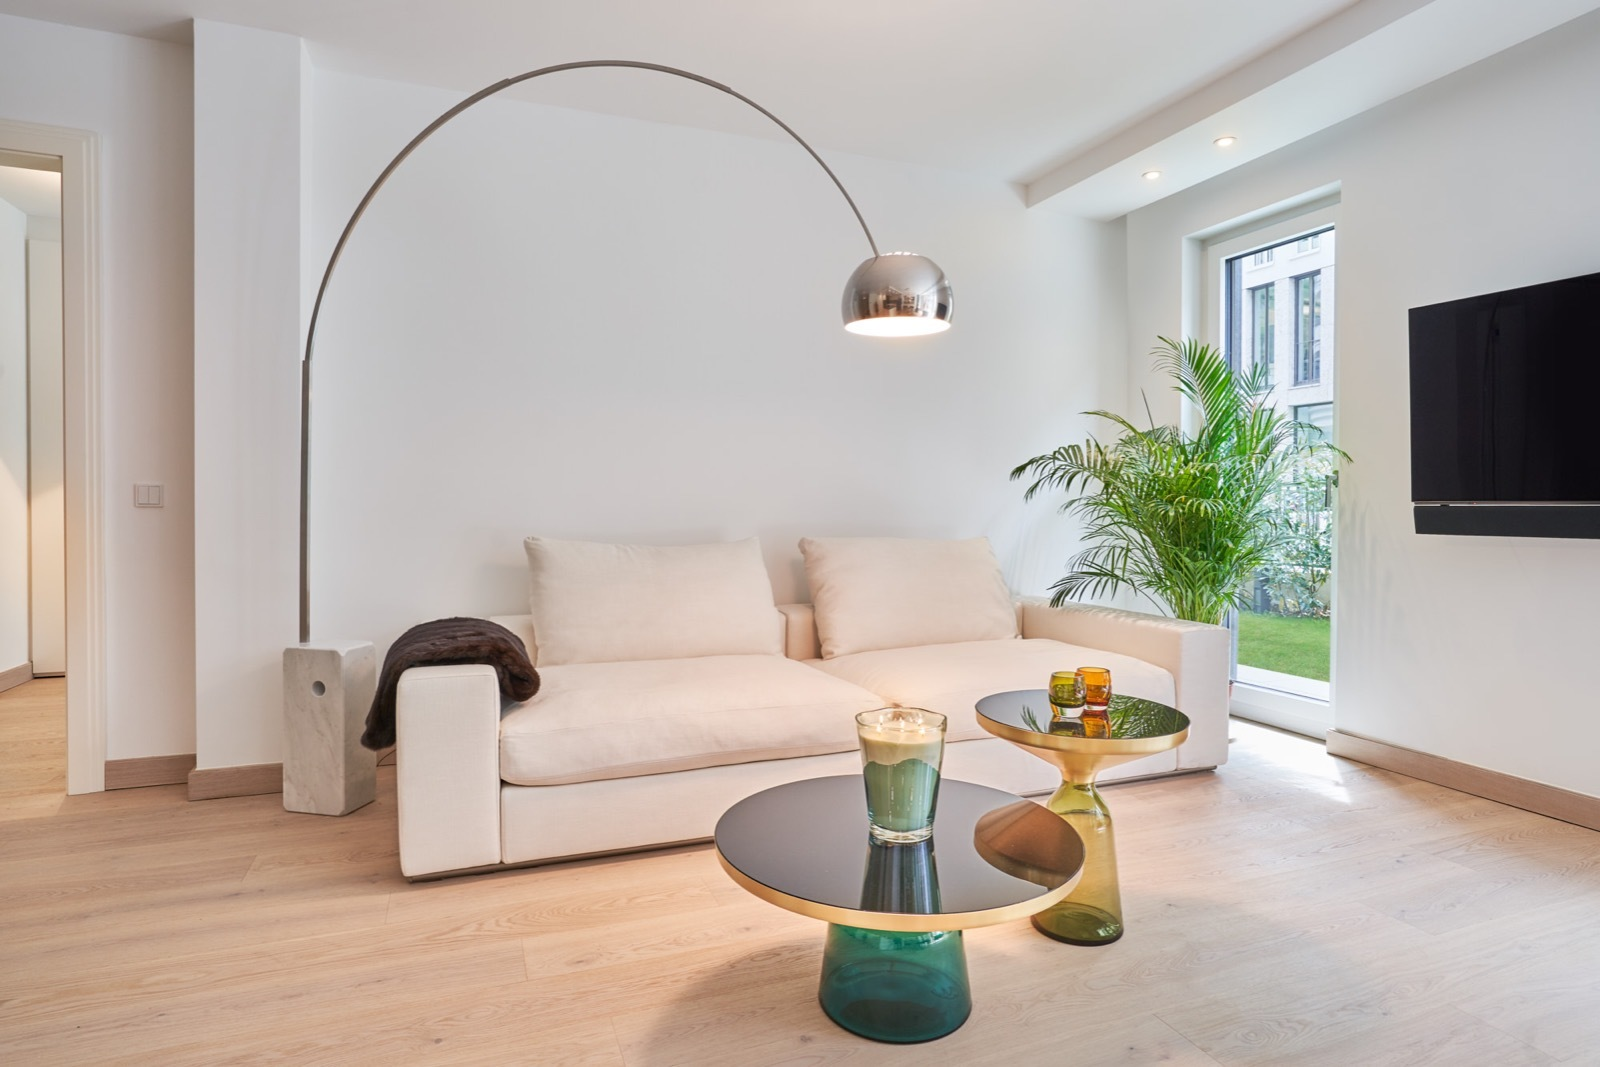 Rent modern house living room as a photo studio and film location in Münich, Germany with Beazy